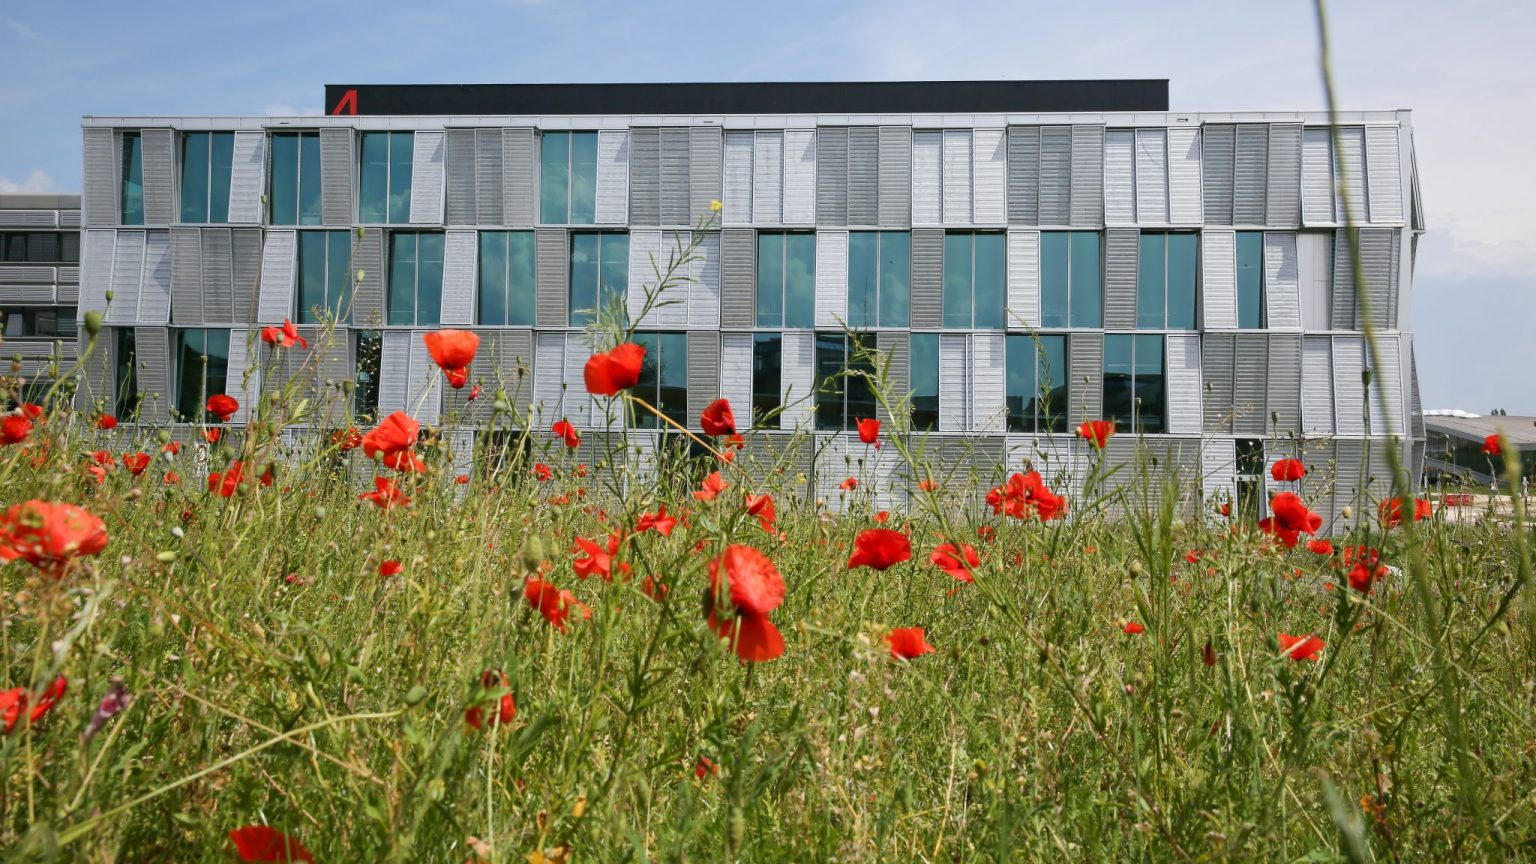 One of EPFL Sustainability objectives is to adapt the campus to climate change, while controlling energy consumption, improving well-being and promoting biodiversity.